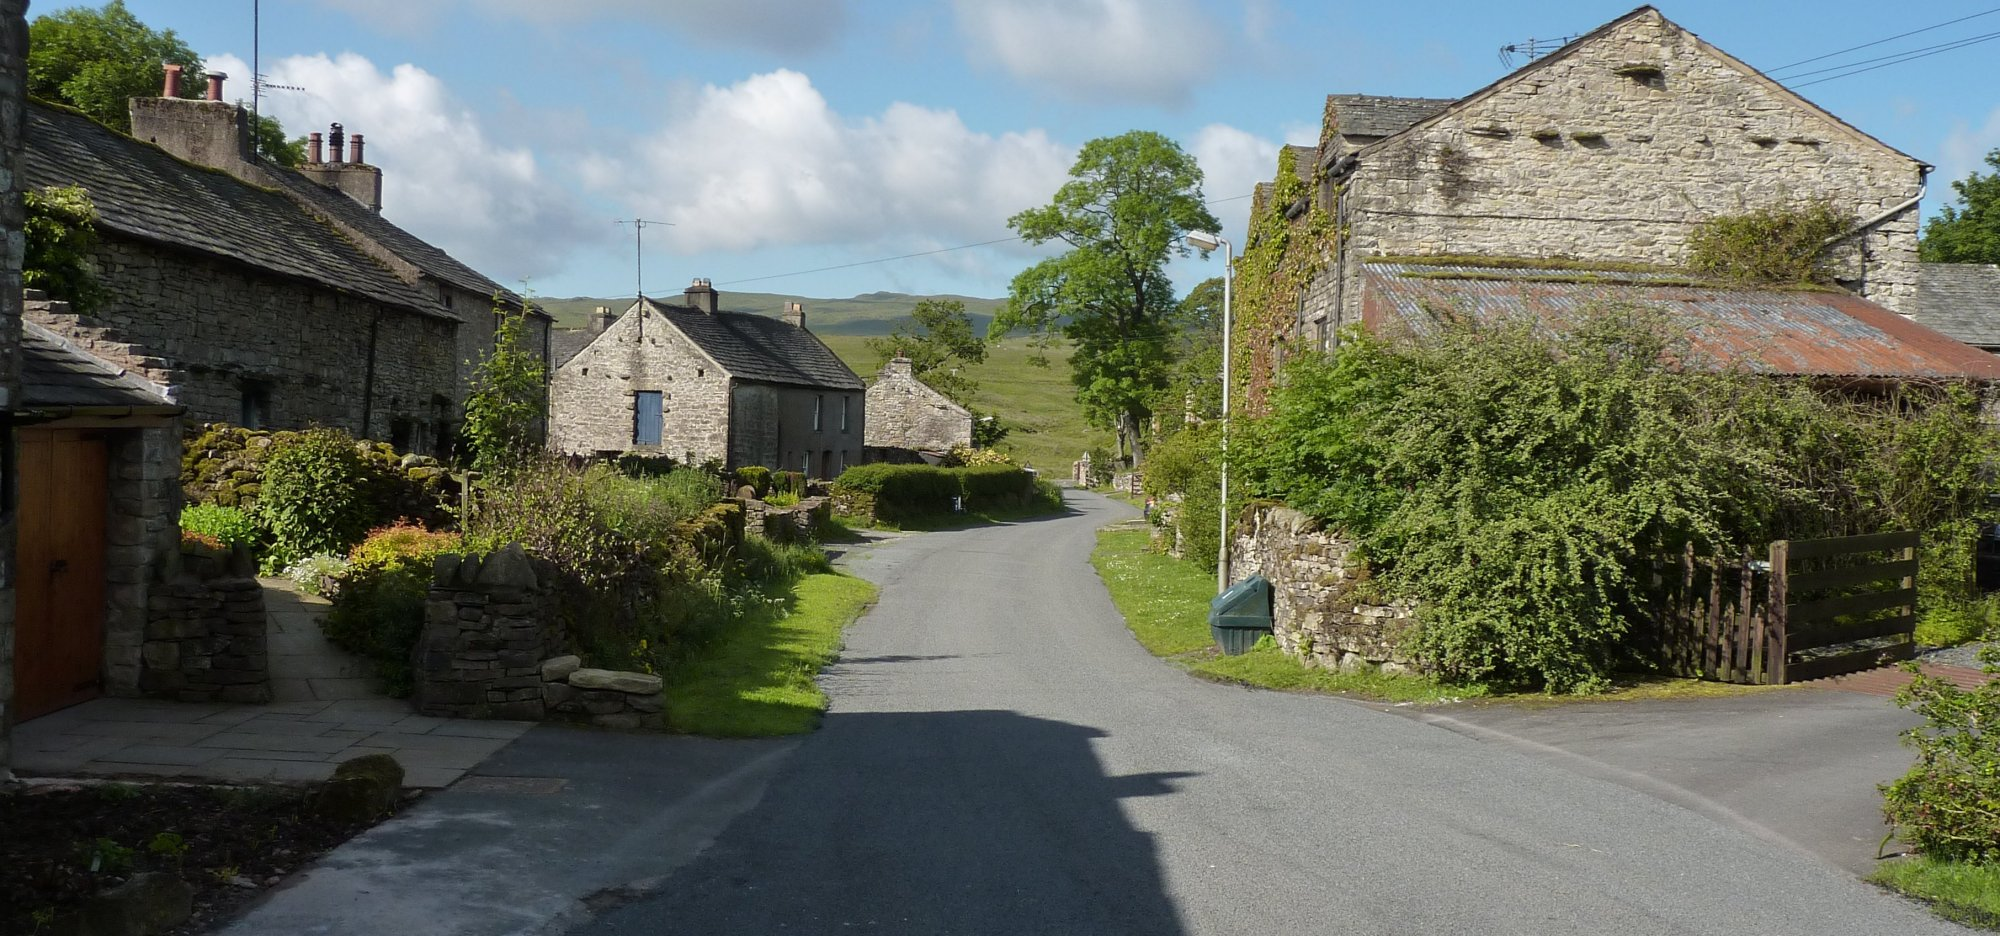 The lovely little hamlet of Keld